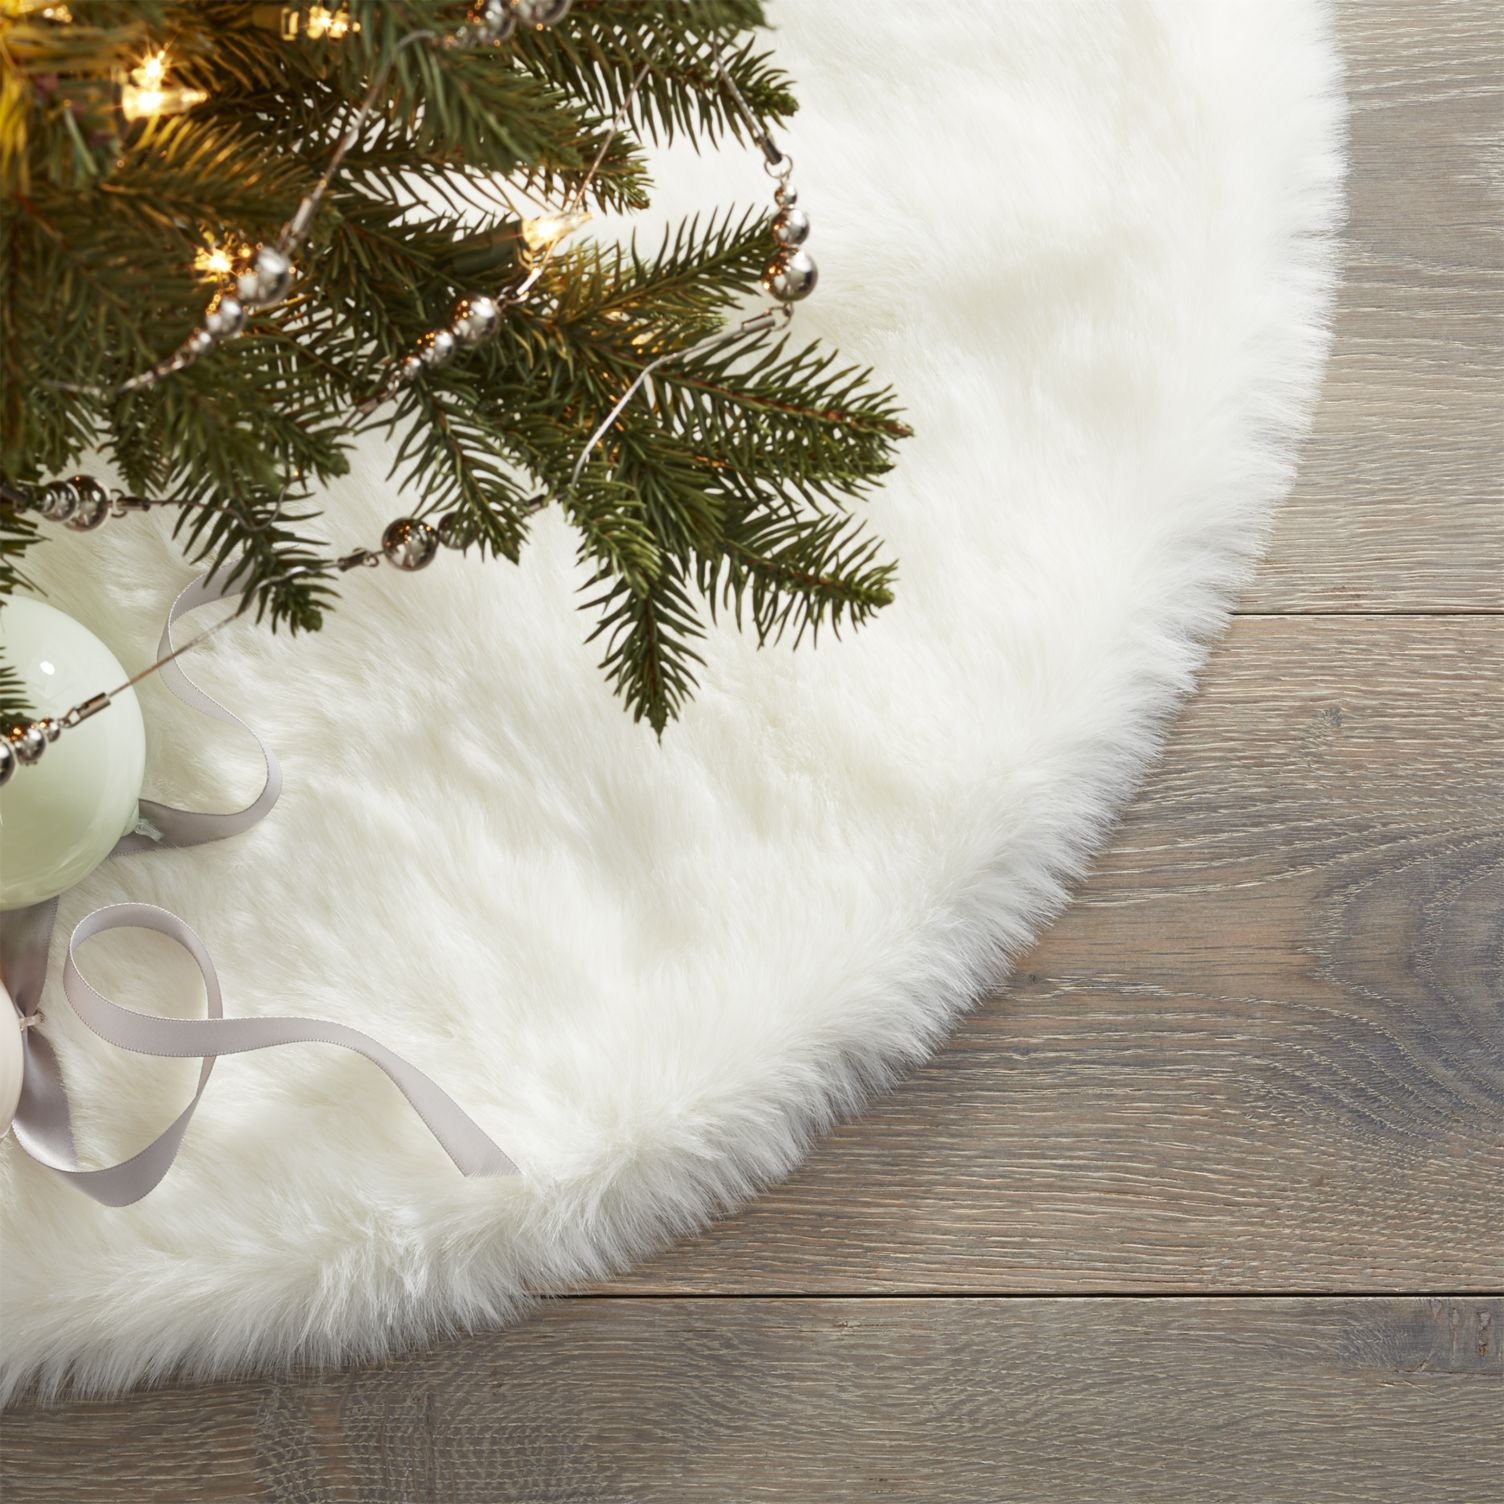 Faux fur tree skirt from CB2